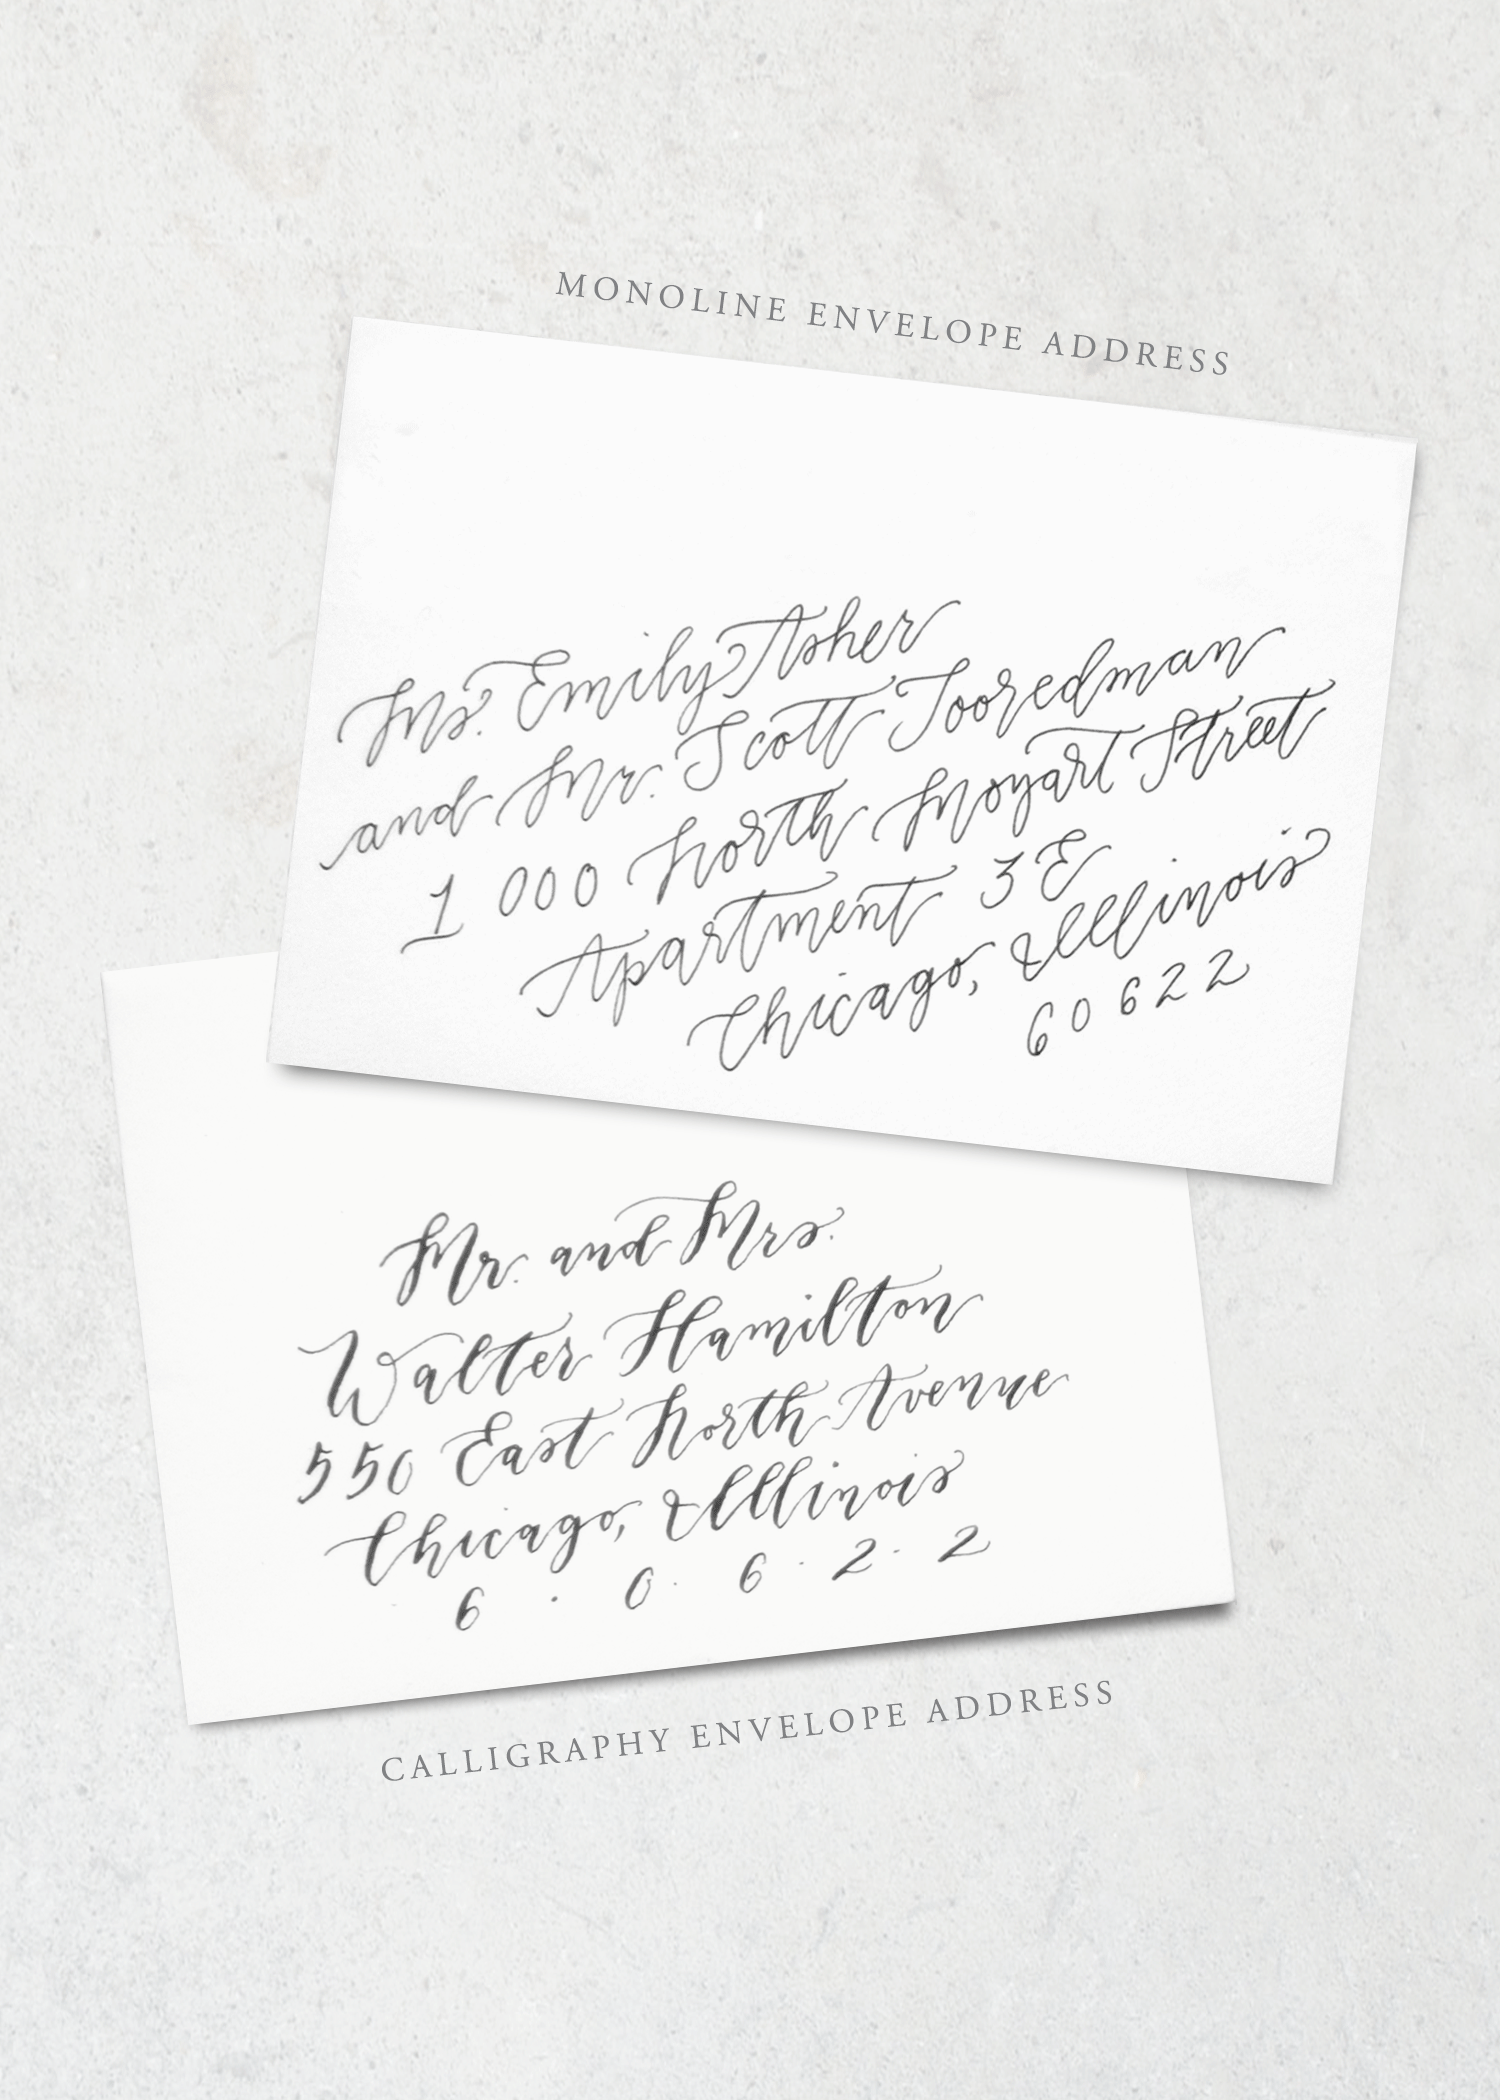 HAND-LETTERING SERVICES